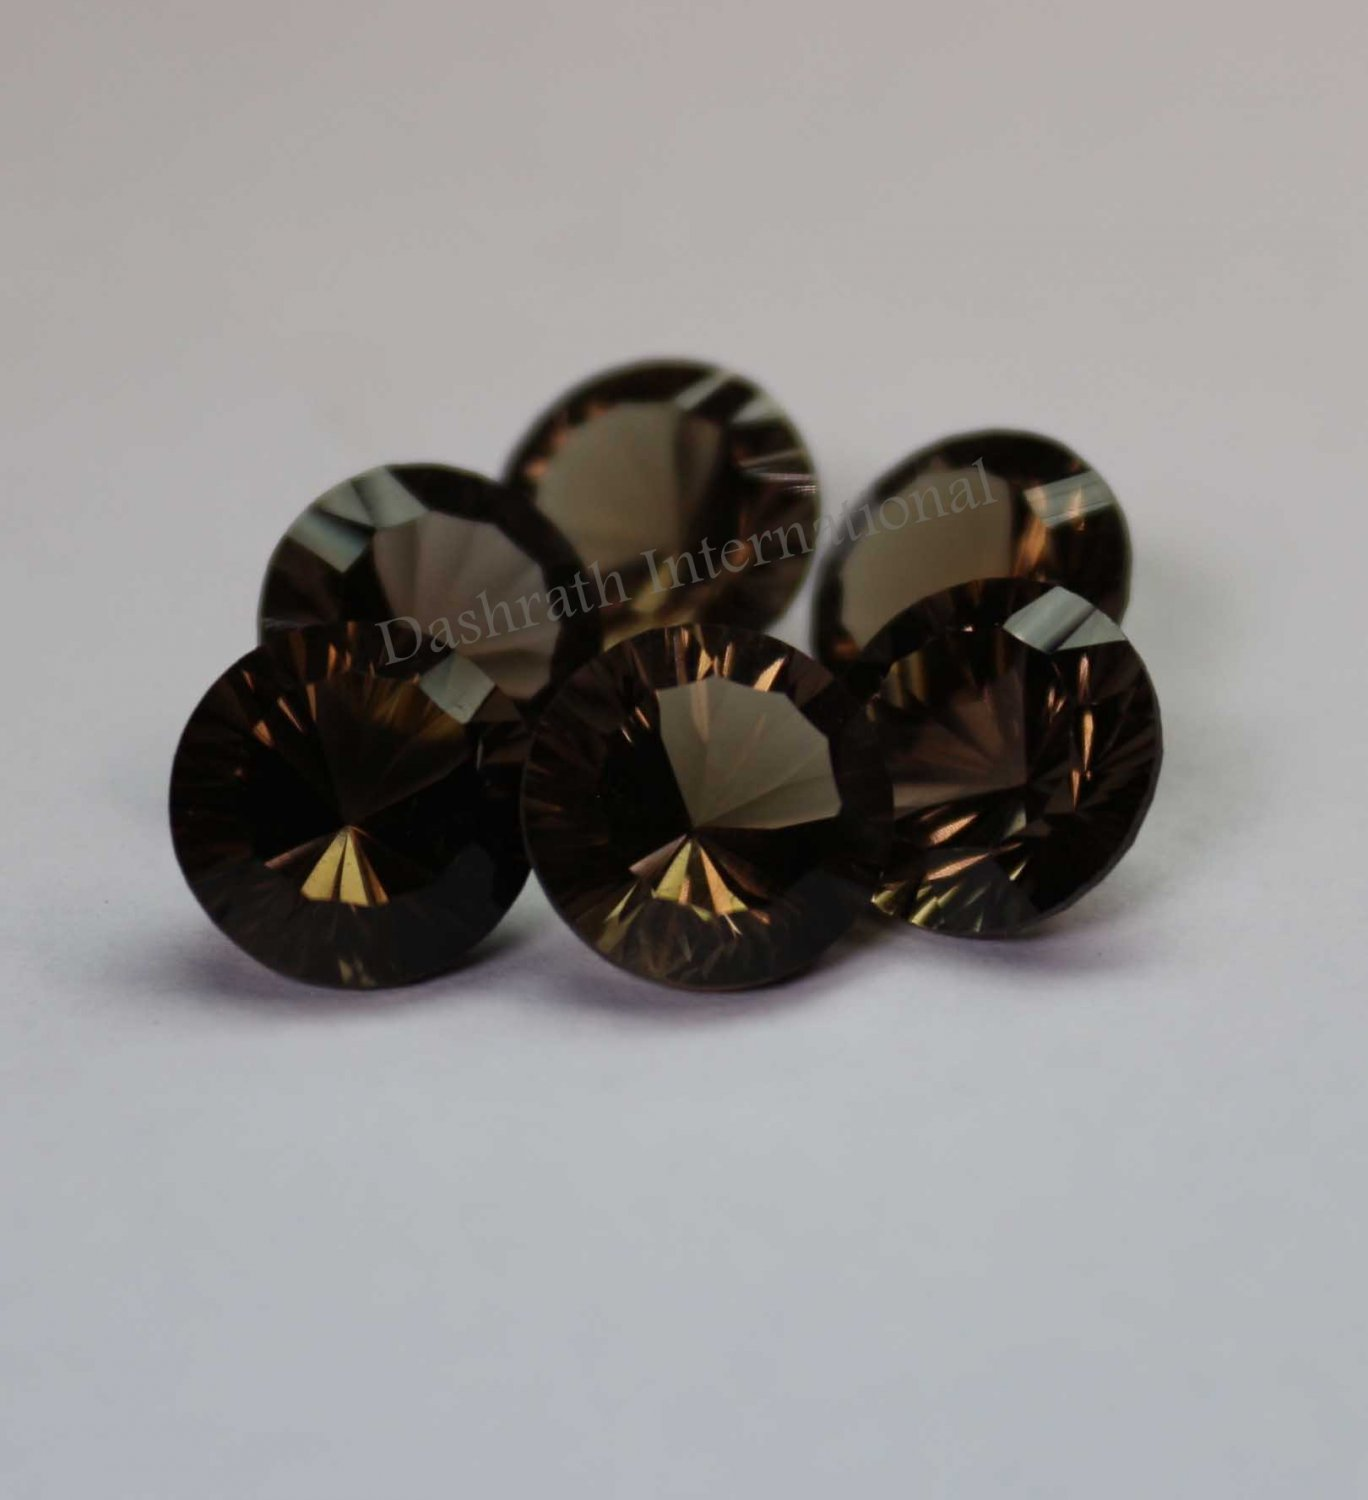 18mmNatural Smoky Quartz Concave Cut Round 25 Pieces Lot    (SI) Top Quality  Loose Gemstone